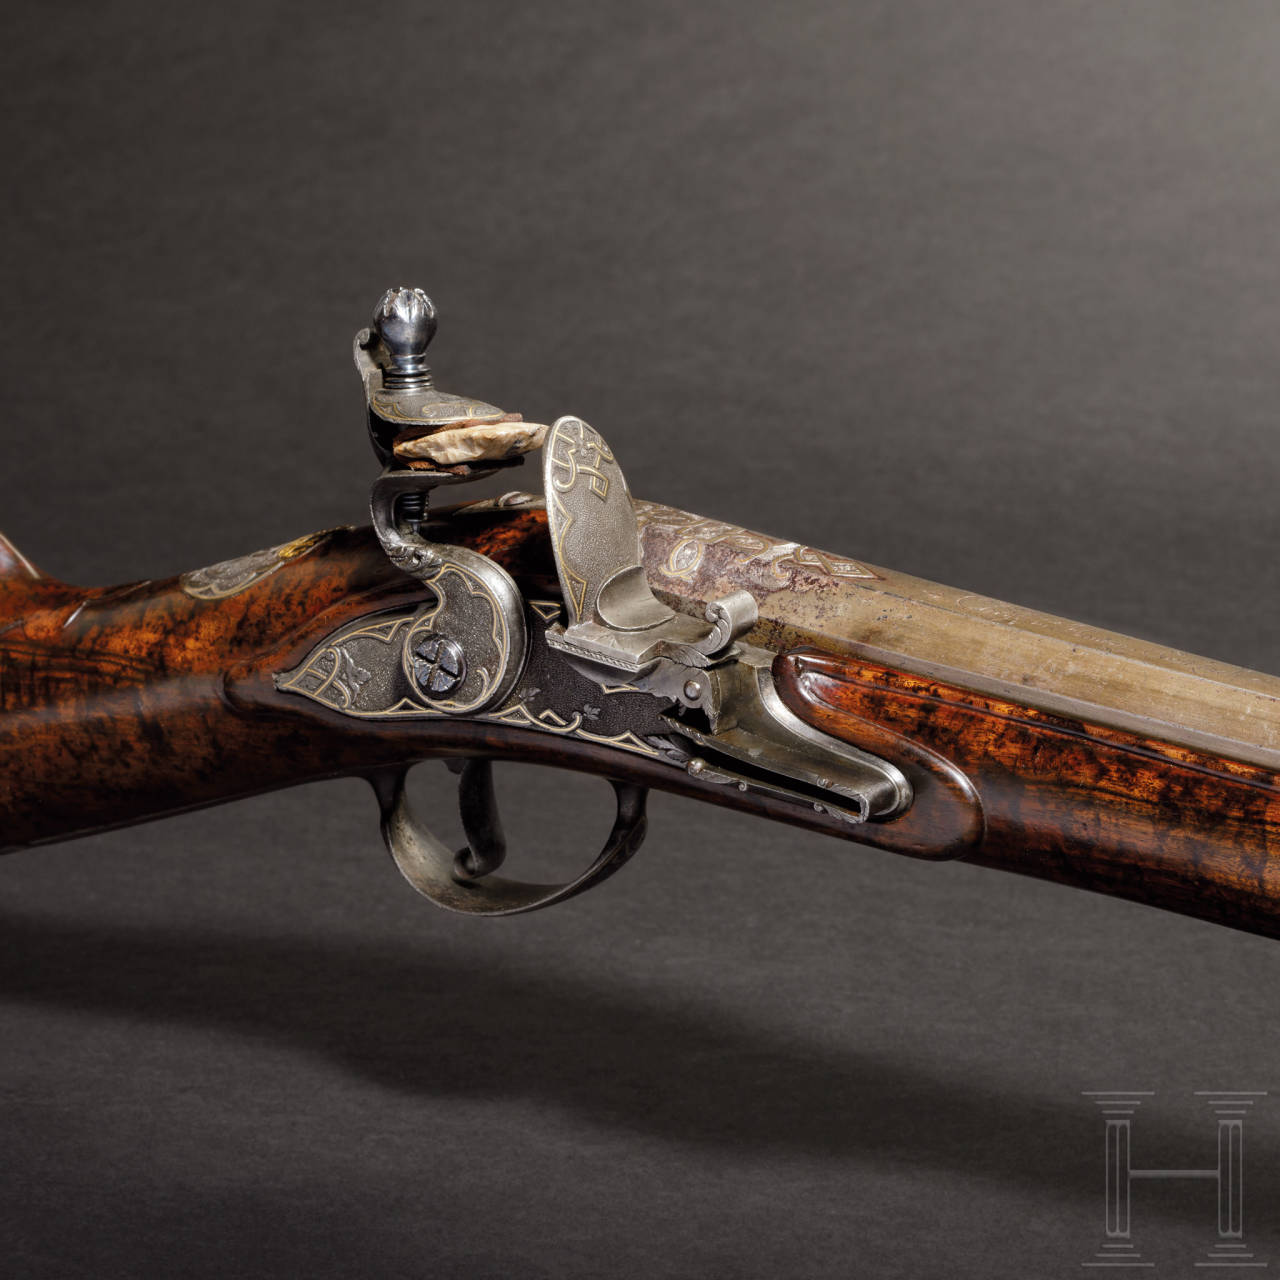 A deluxe flintlock rifle from the armoury of King Frederick I of Prussia (1701-13), Christian Haman, Ansbach, circa 1710